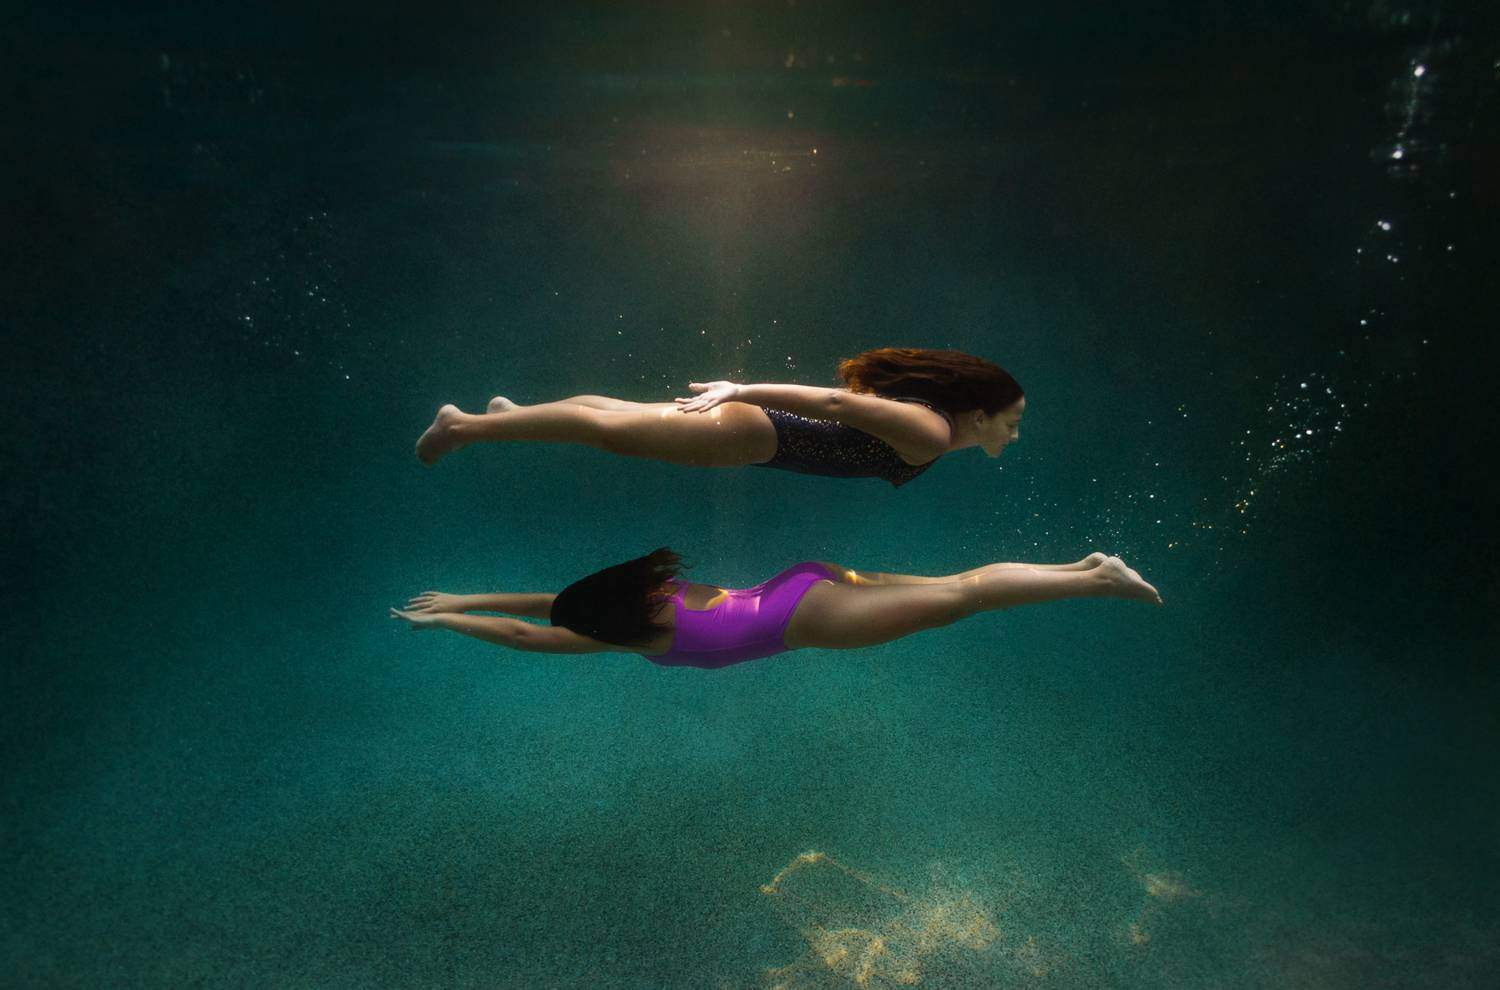 Two children swim underwater. One child is above the other, creating two parallel lines beneath the water